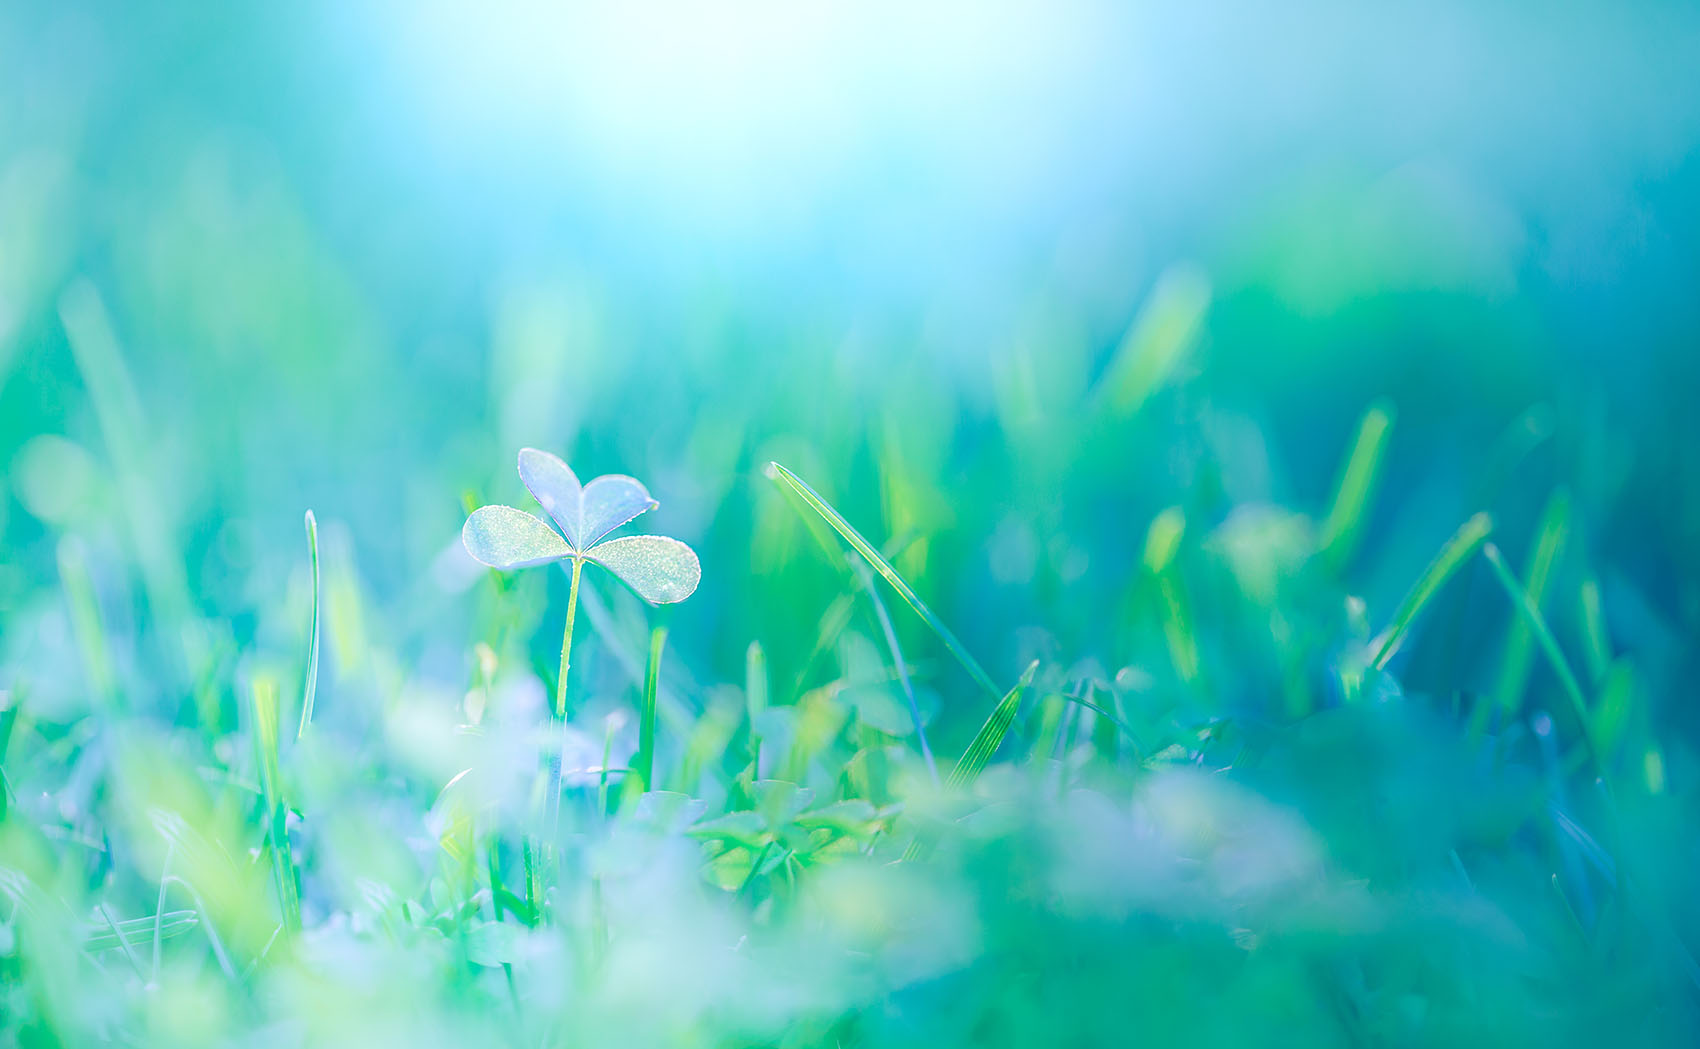 Close,Up,Nature,Background.,Relaxing,Green,Blue,Meadow.,Beautiful,Sunlight